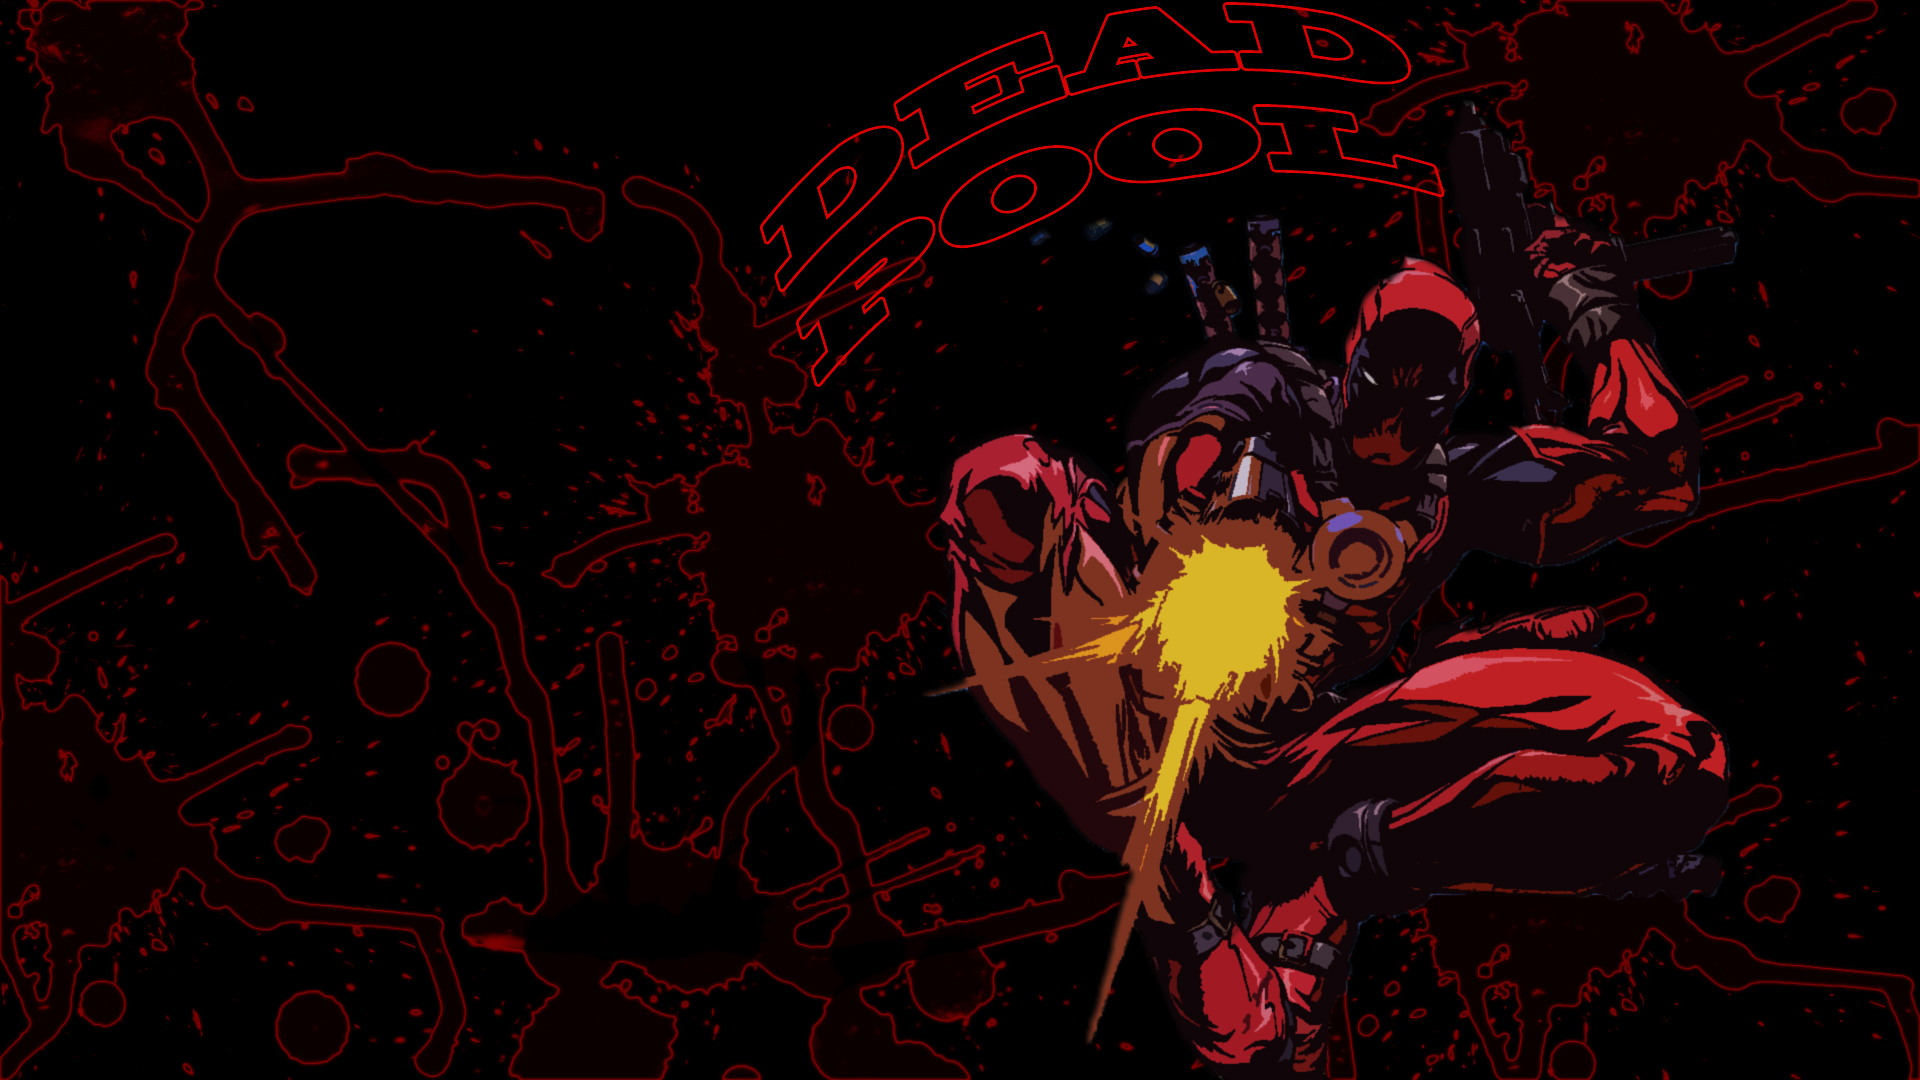 wallpapers cool oldirrtydoogz deadpool whipped couple wallpaper 1920x1080